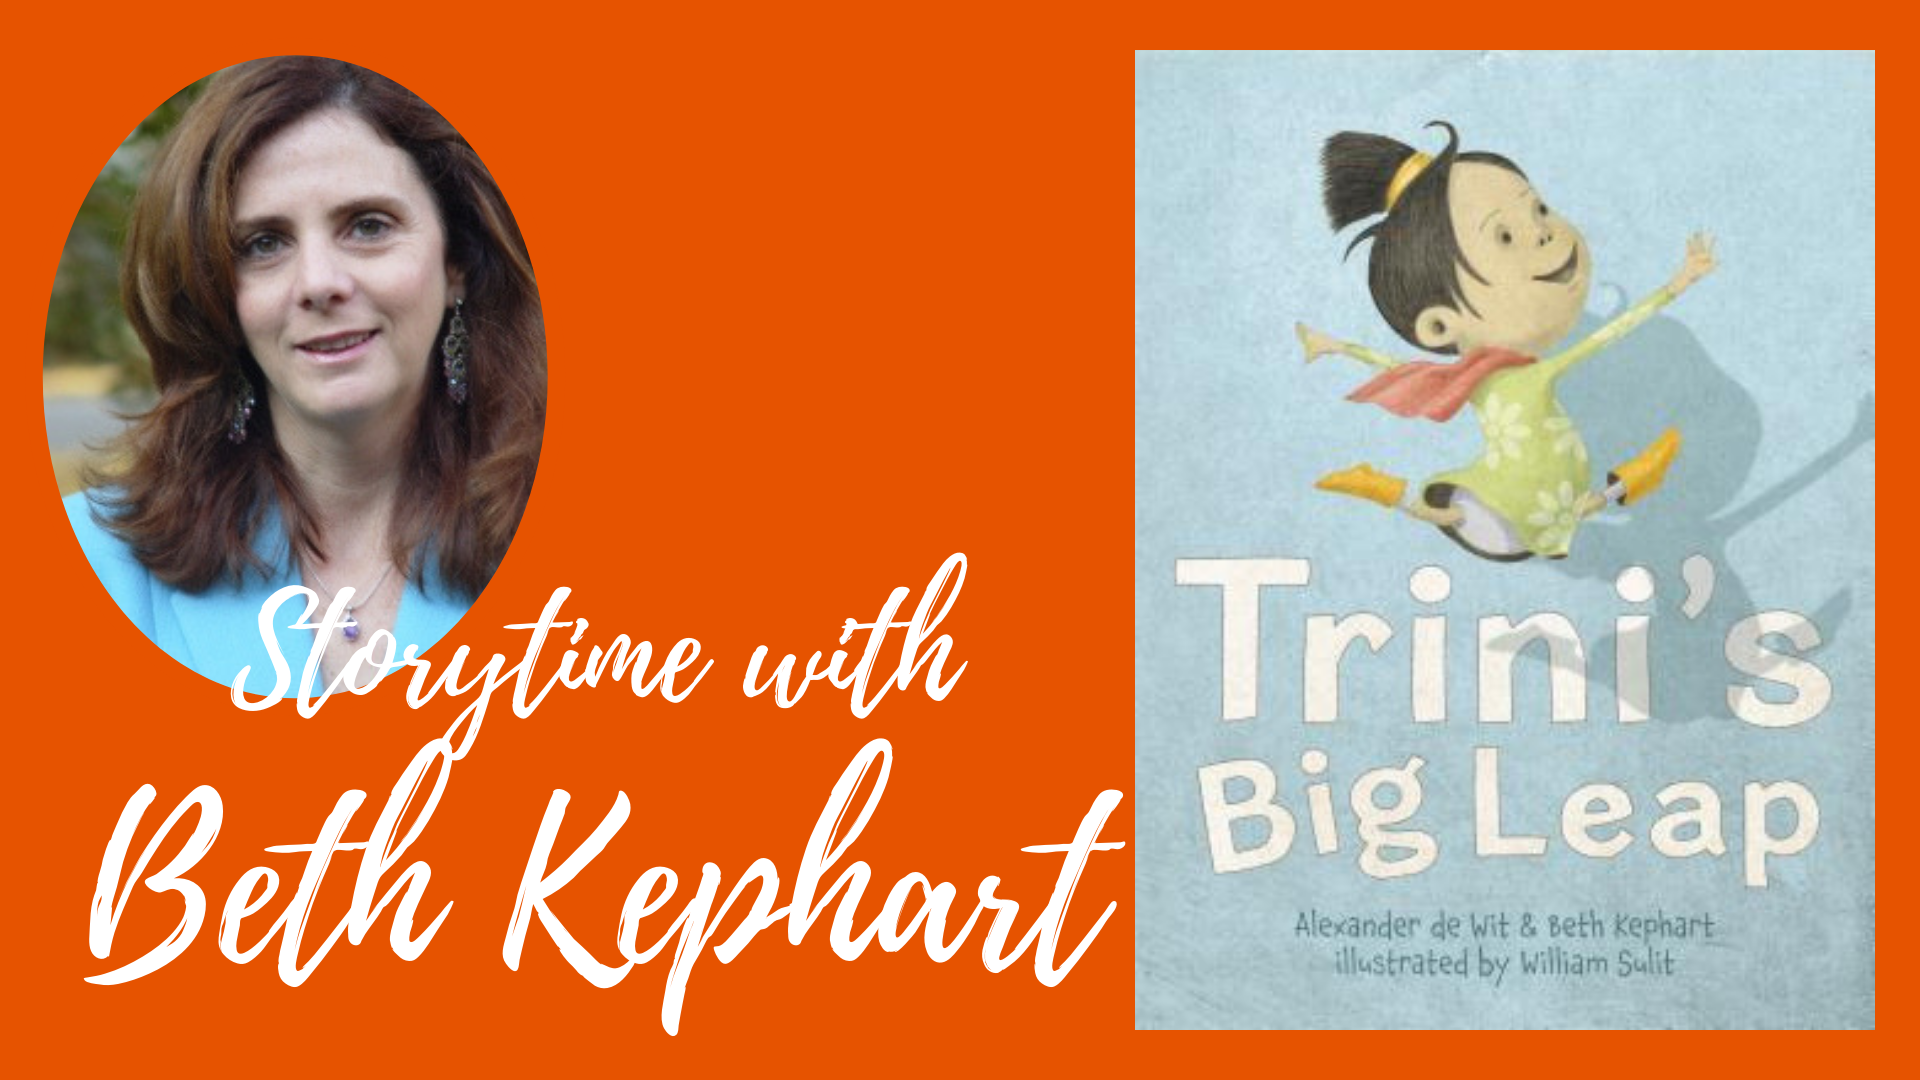 Storytime with Beth Kephart